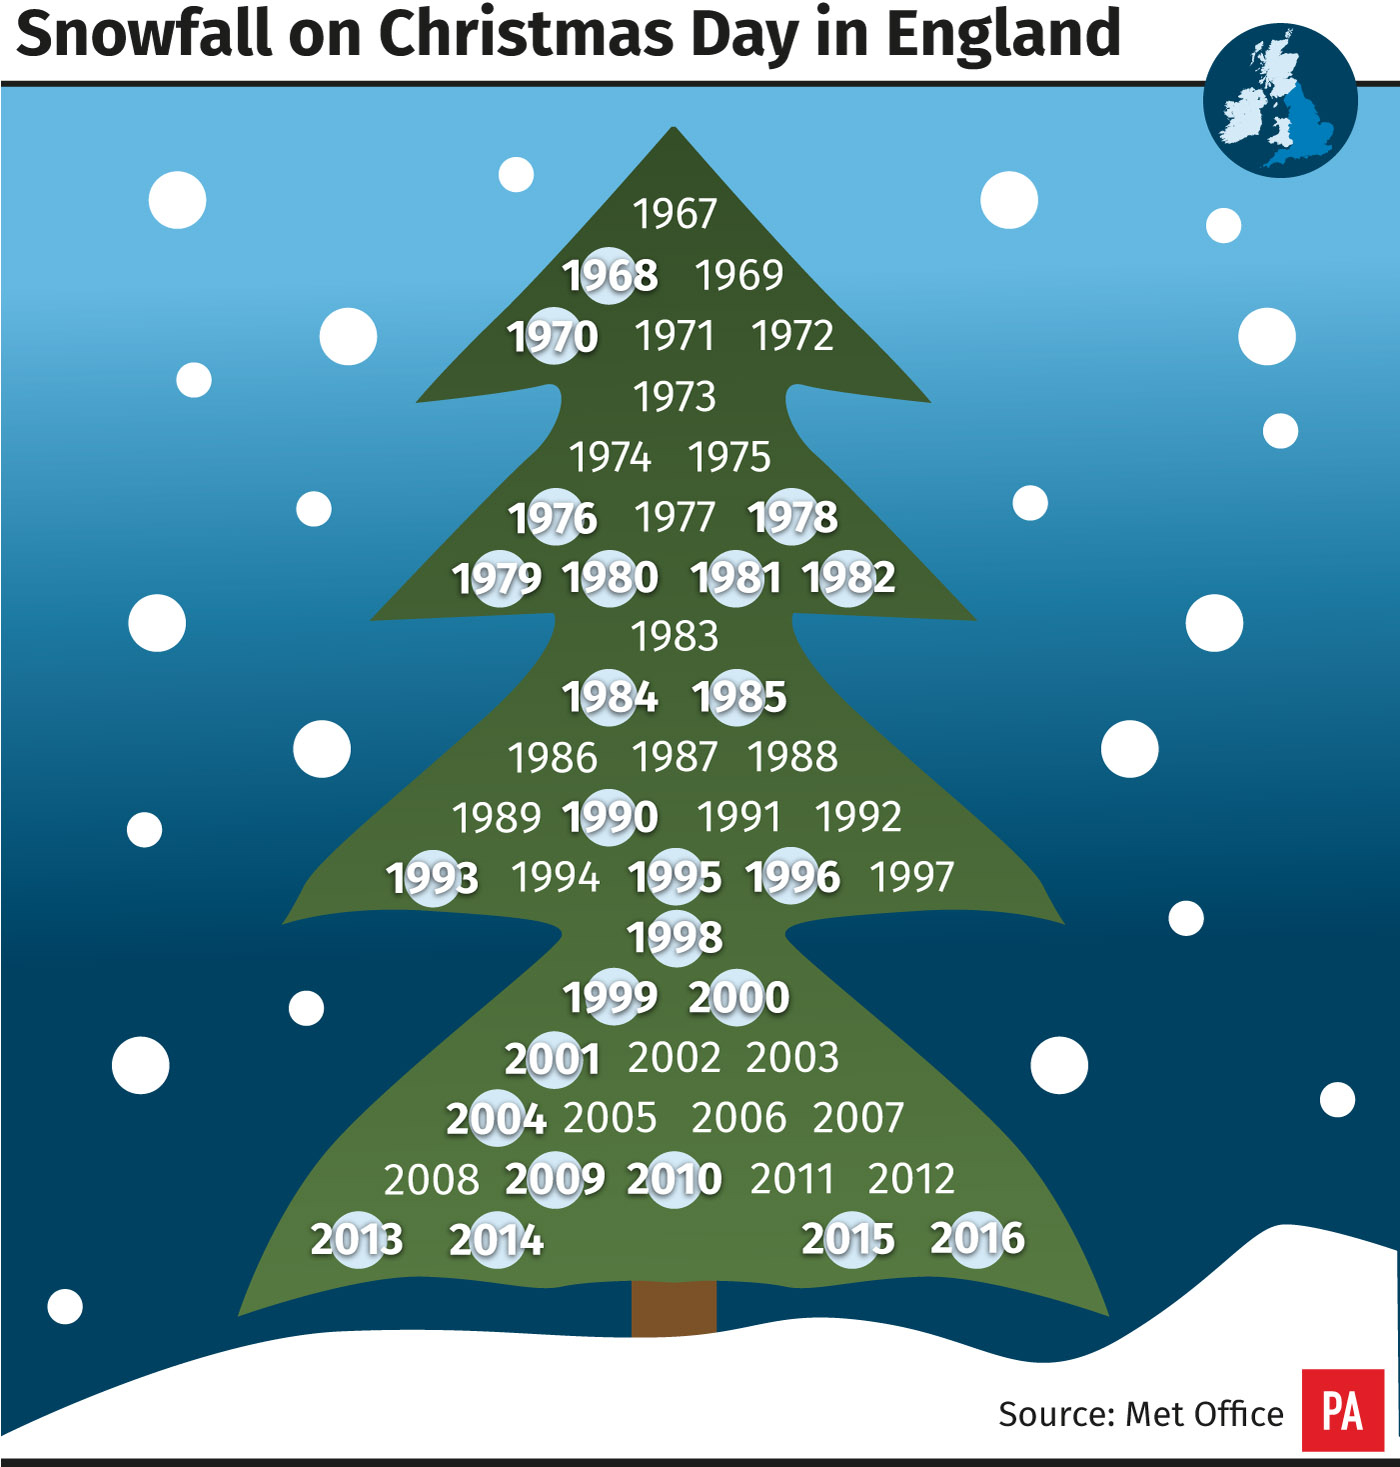 nowfall on Christmas day in England.